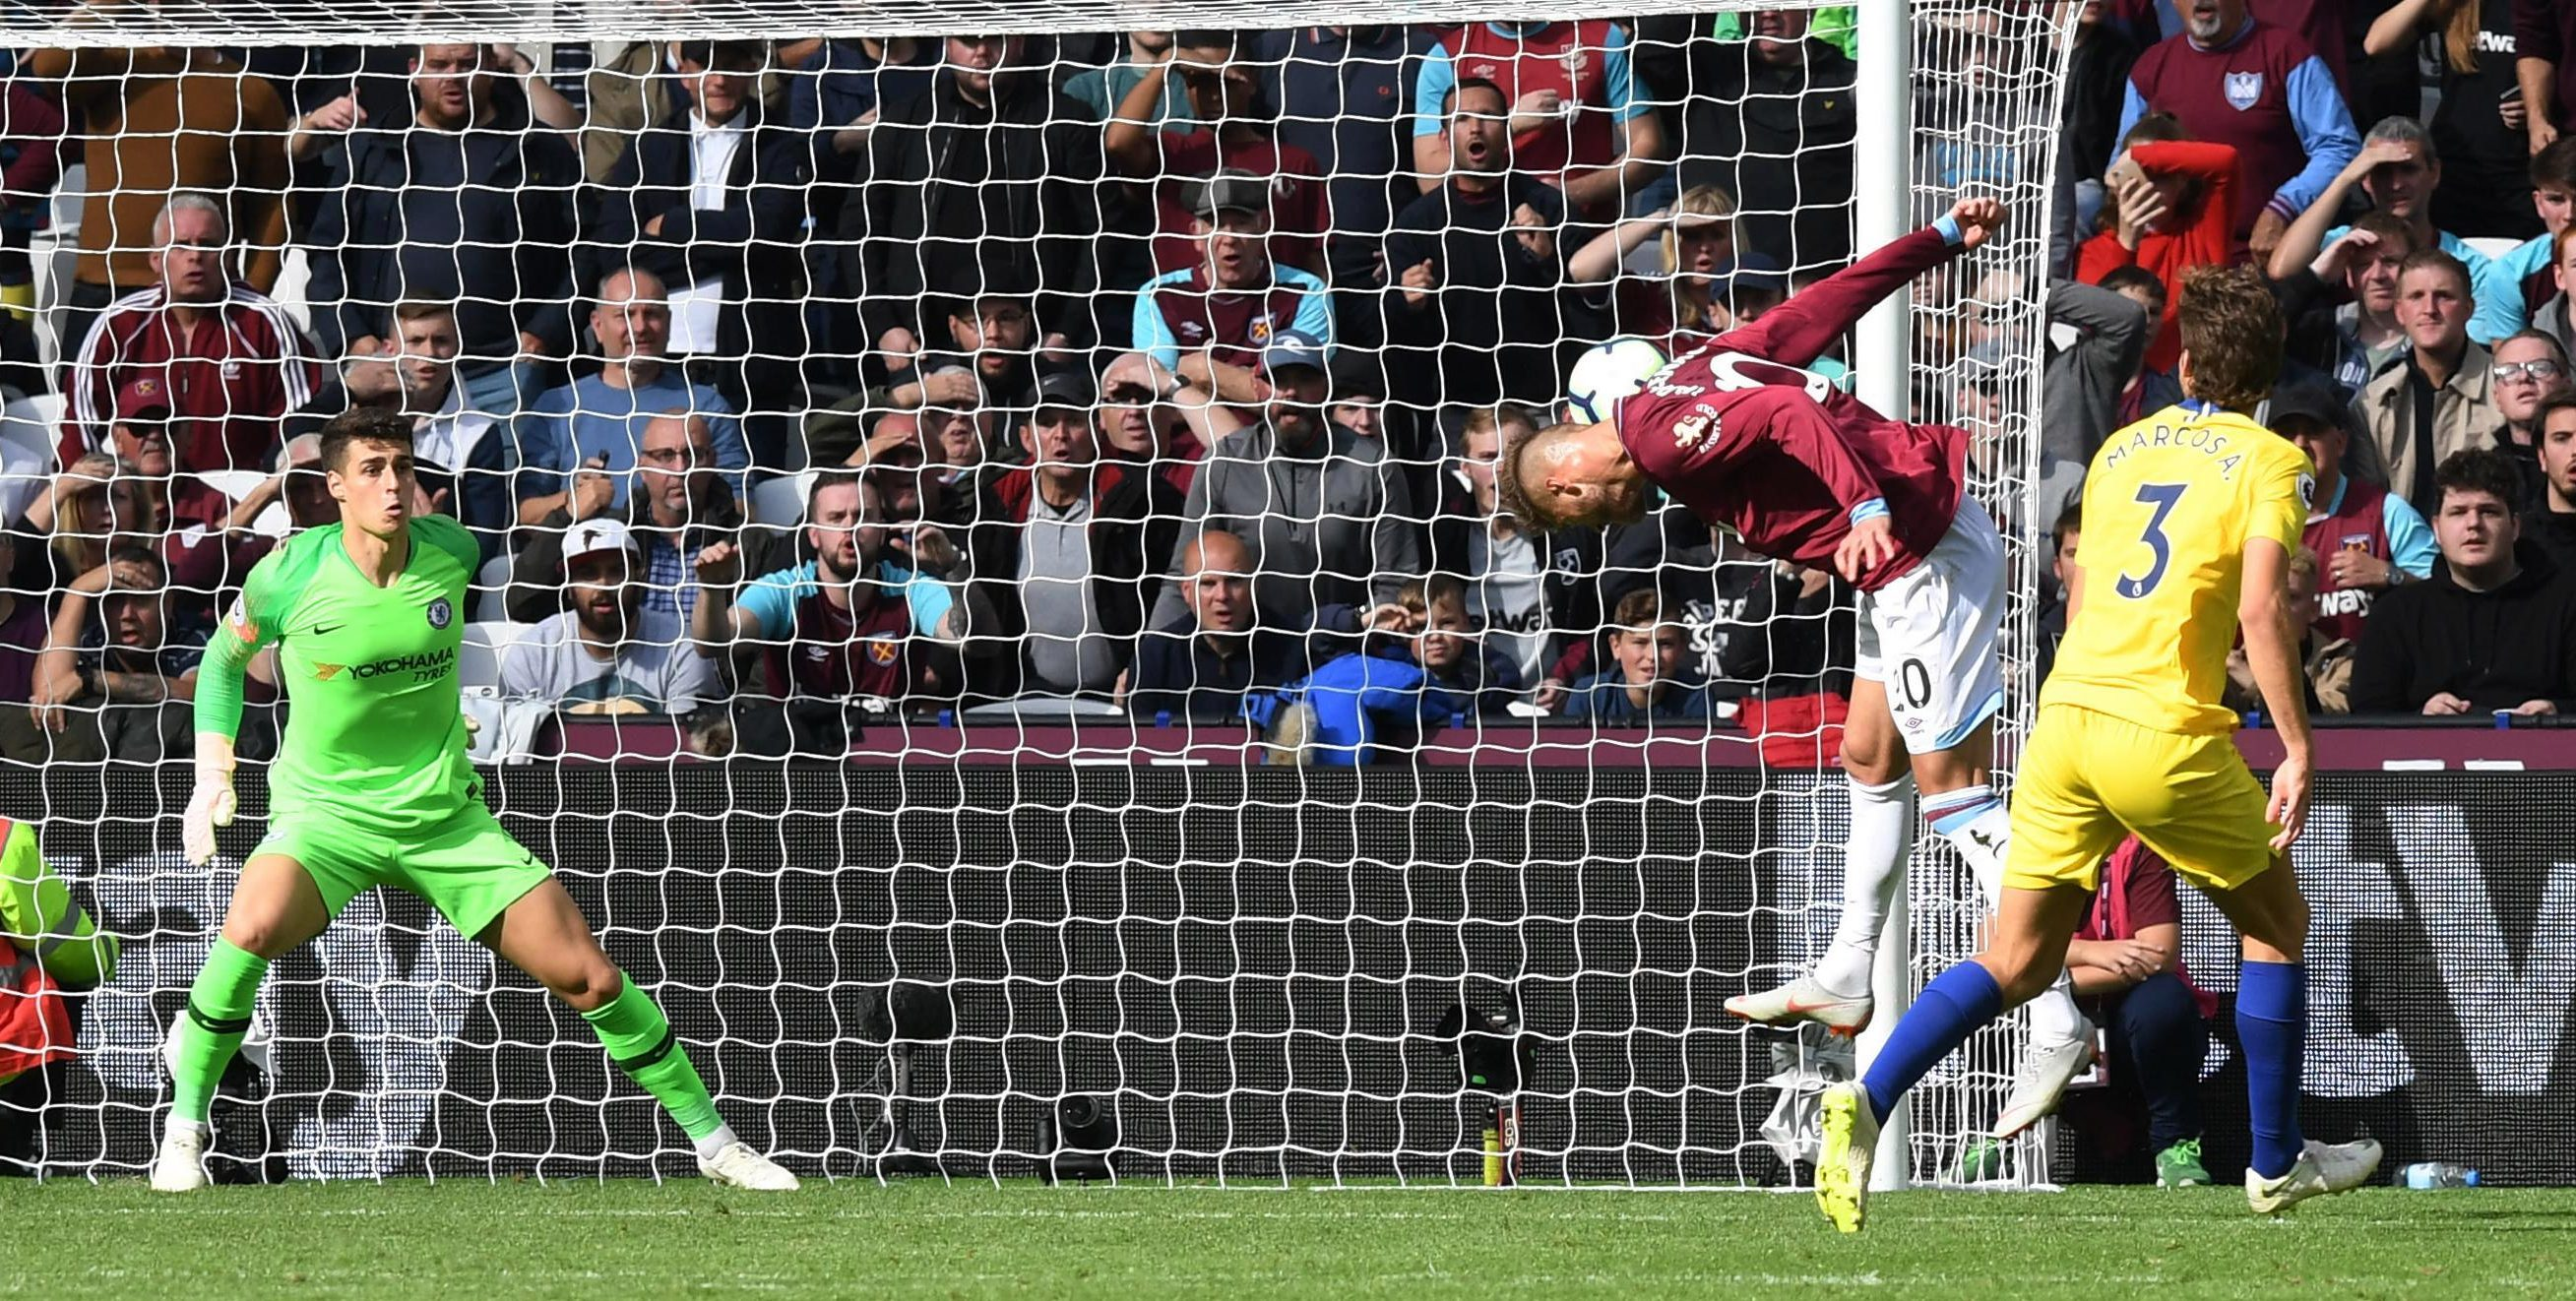 Andriy Yarmolenko had a brilliant chance to win the game for West Ham against Chelsea but fluffed his lines